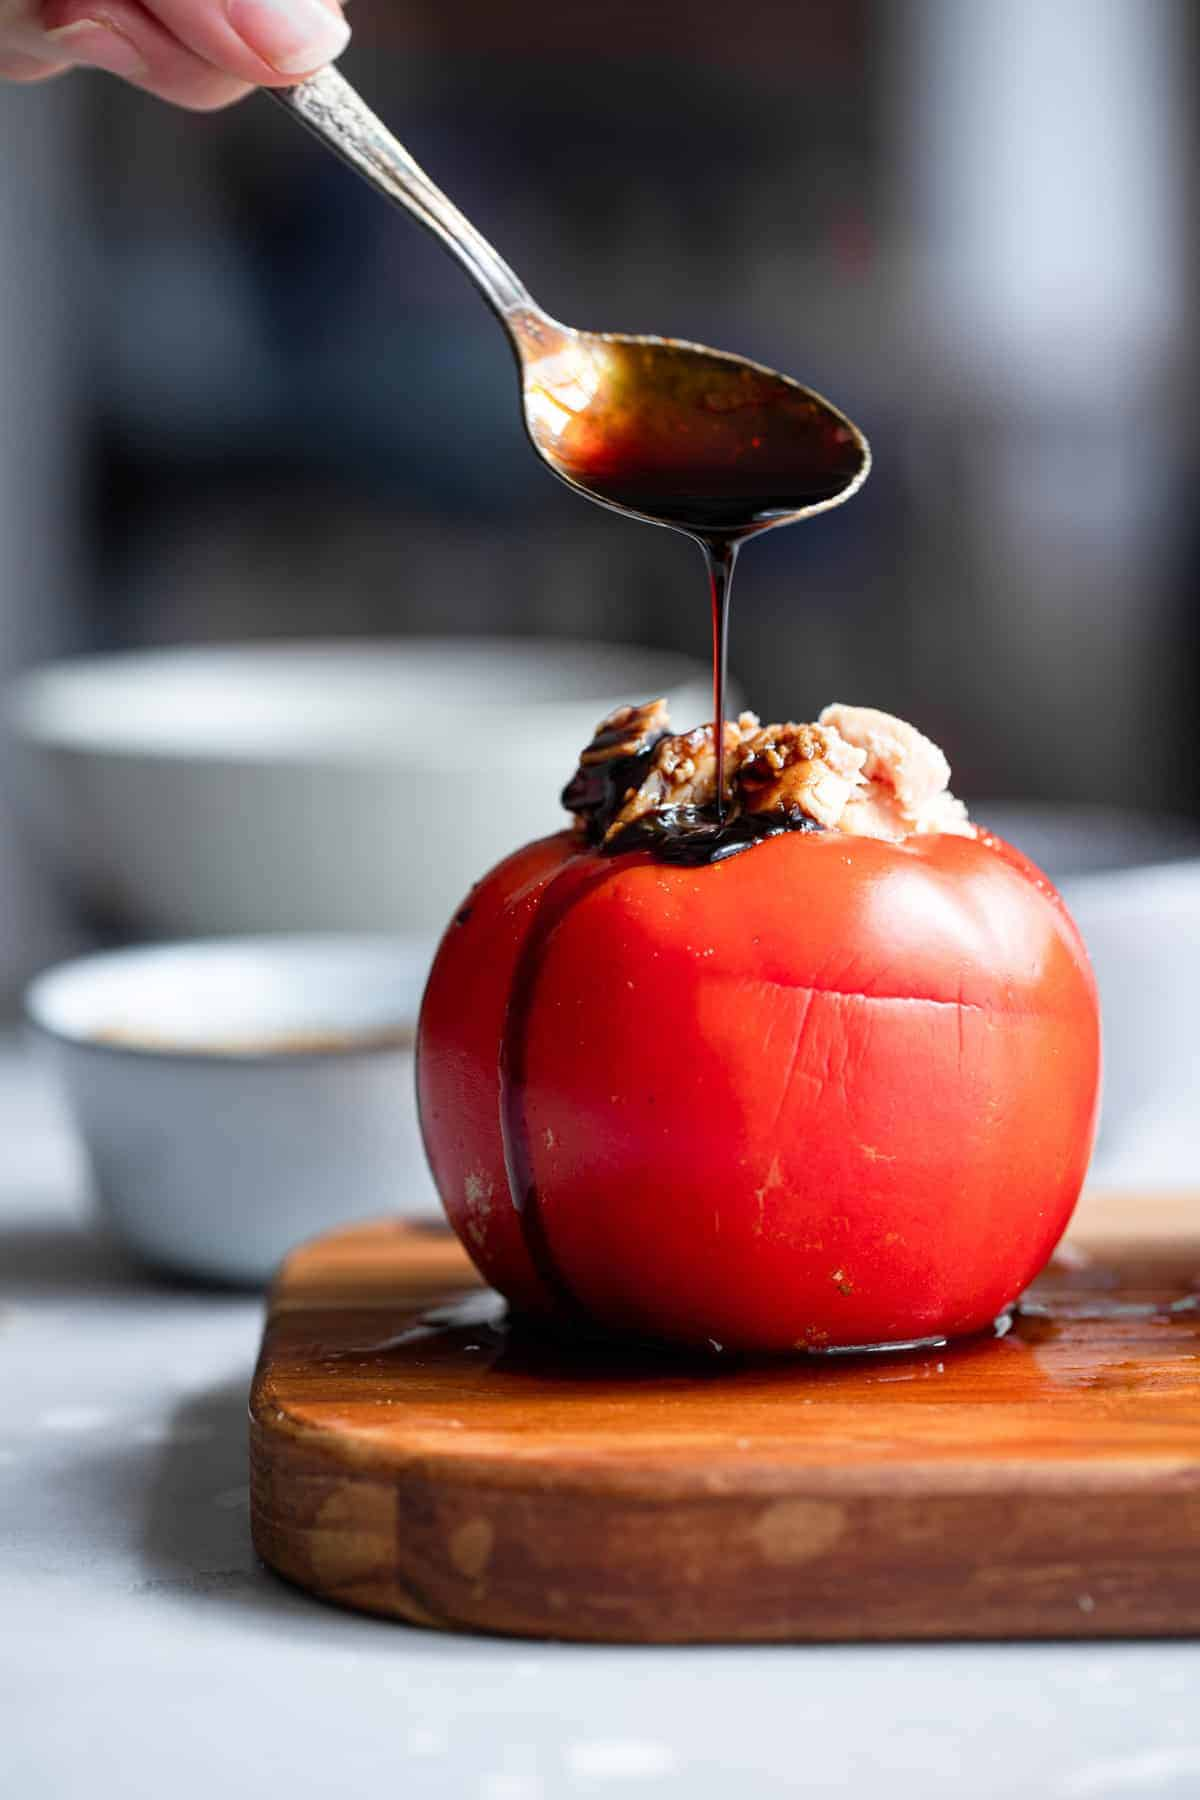 Pouring balsamic vinegar on tuna stuffed tomatoes